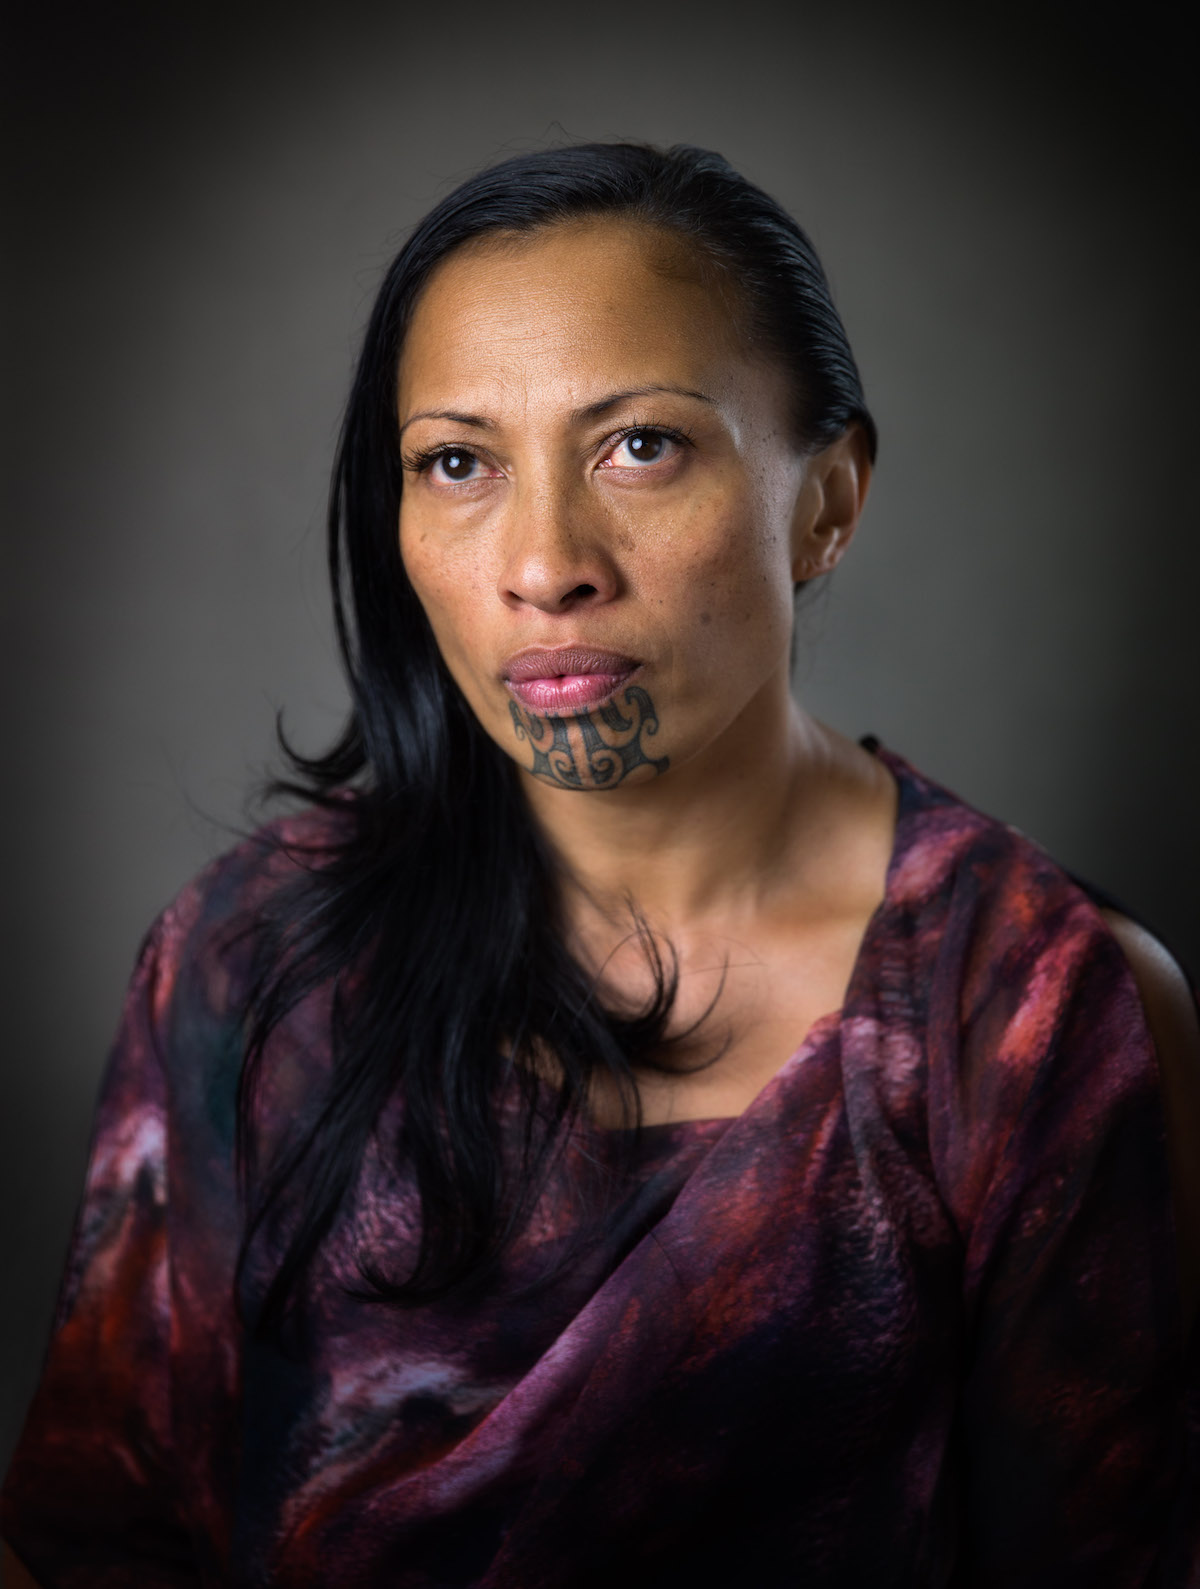 Māori Portrait Photography by Michael Bradley